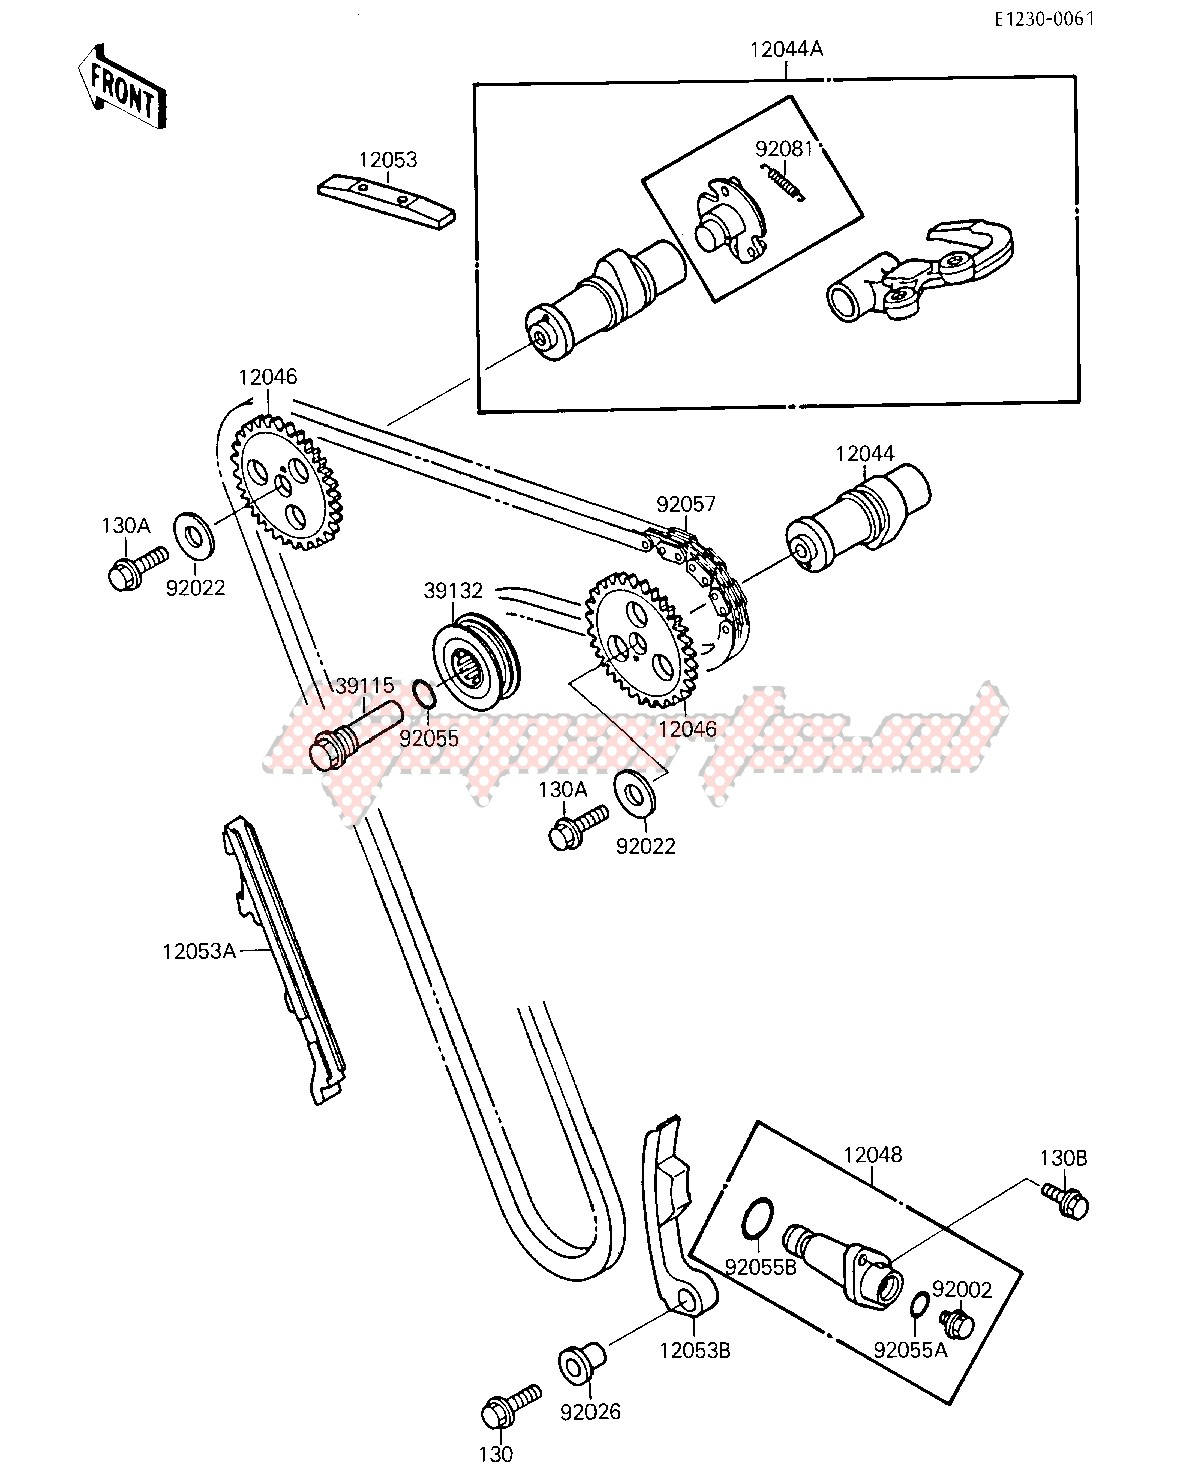 Engine-CAMSHAFTS_CHAIN_TENSIONER